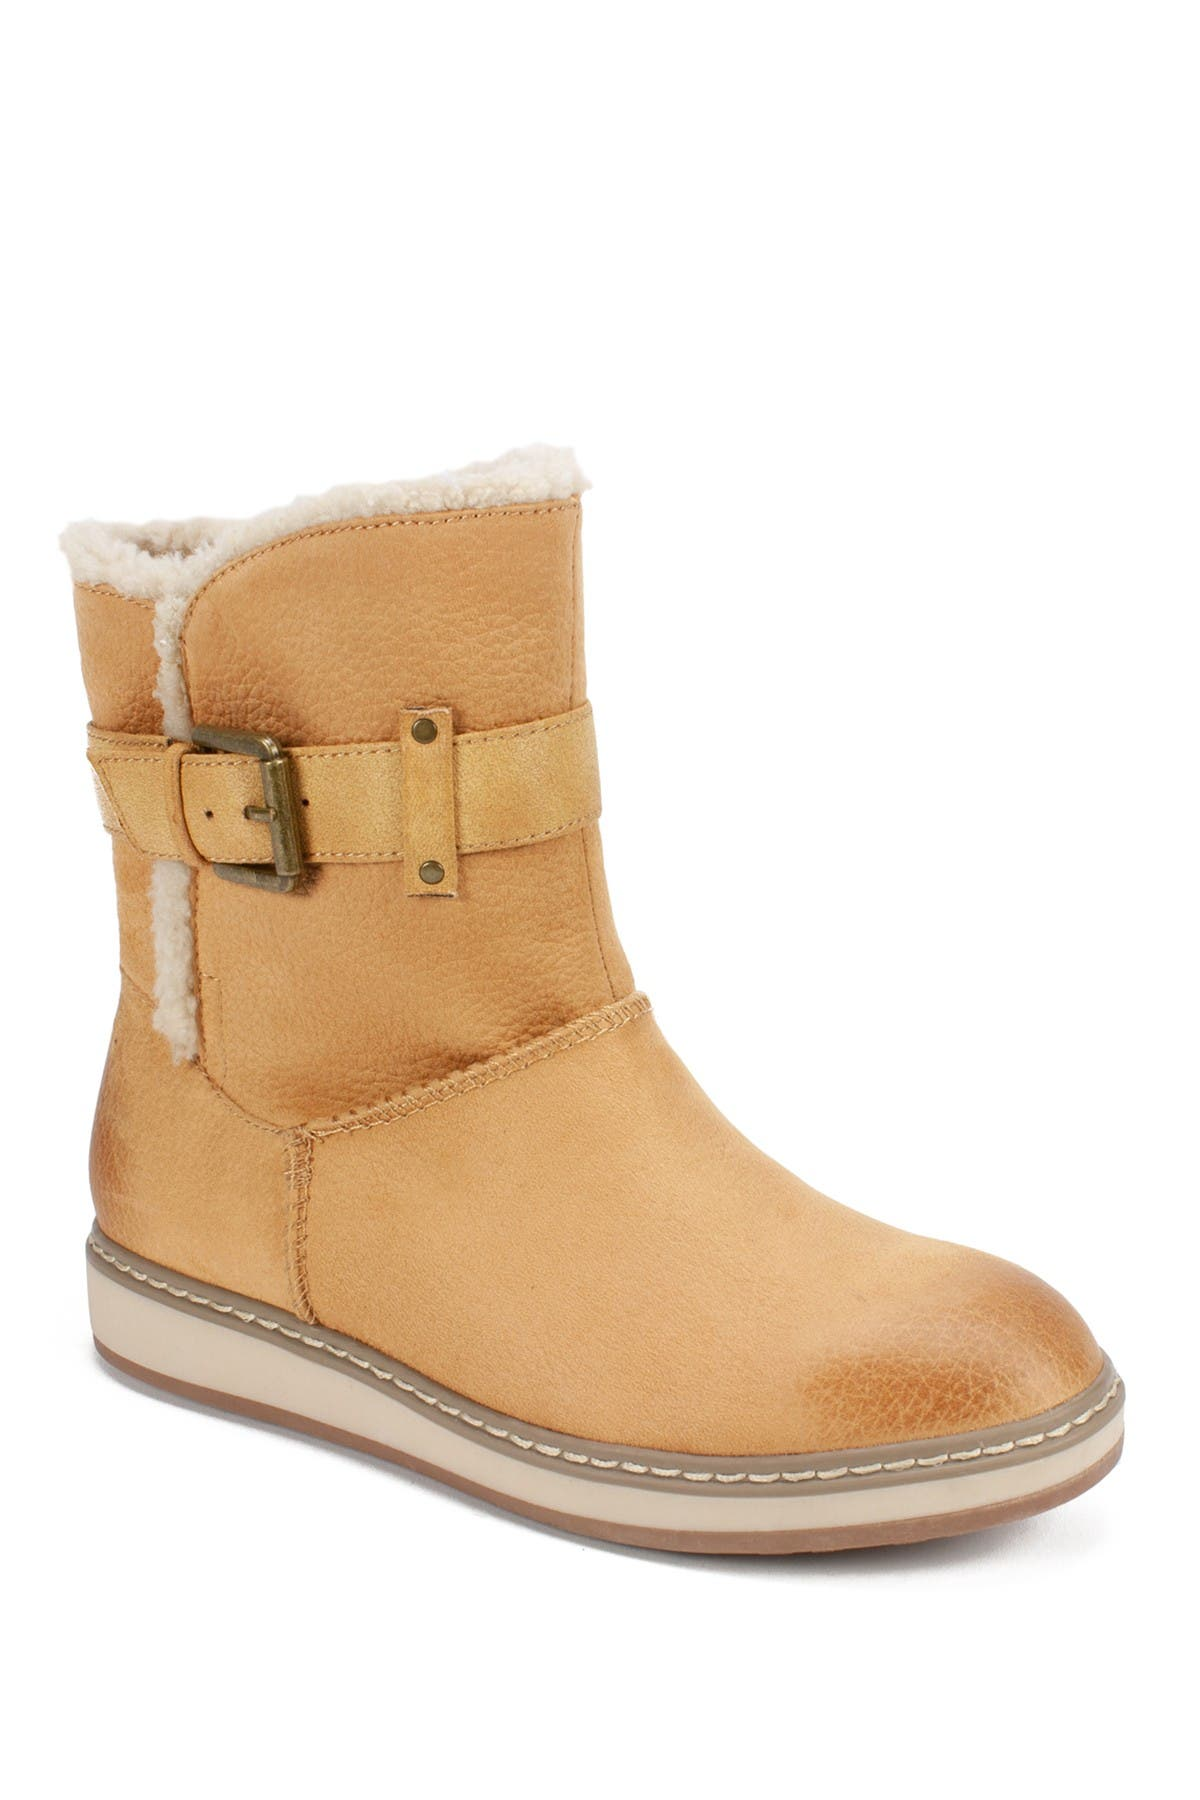 Image of White Mountain Footwear Taite Faux Shearling Lined Boot